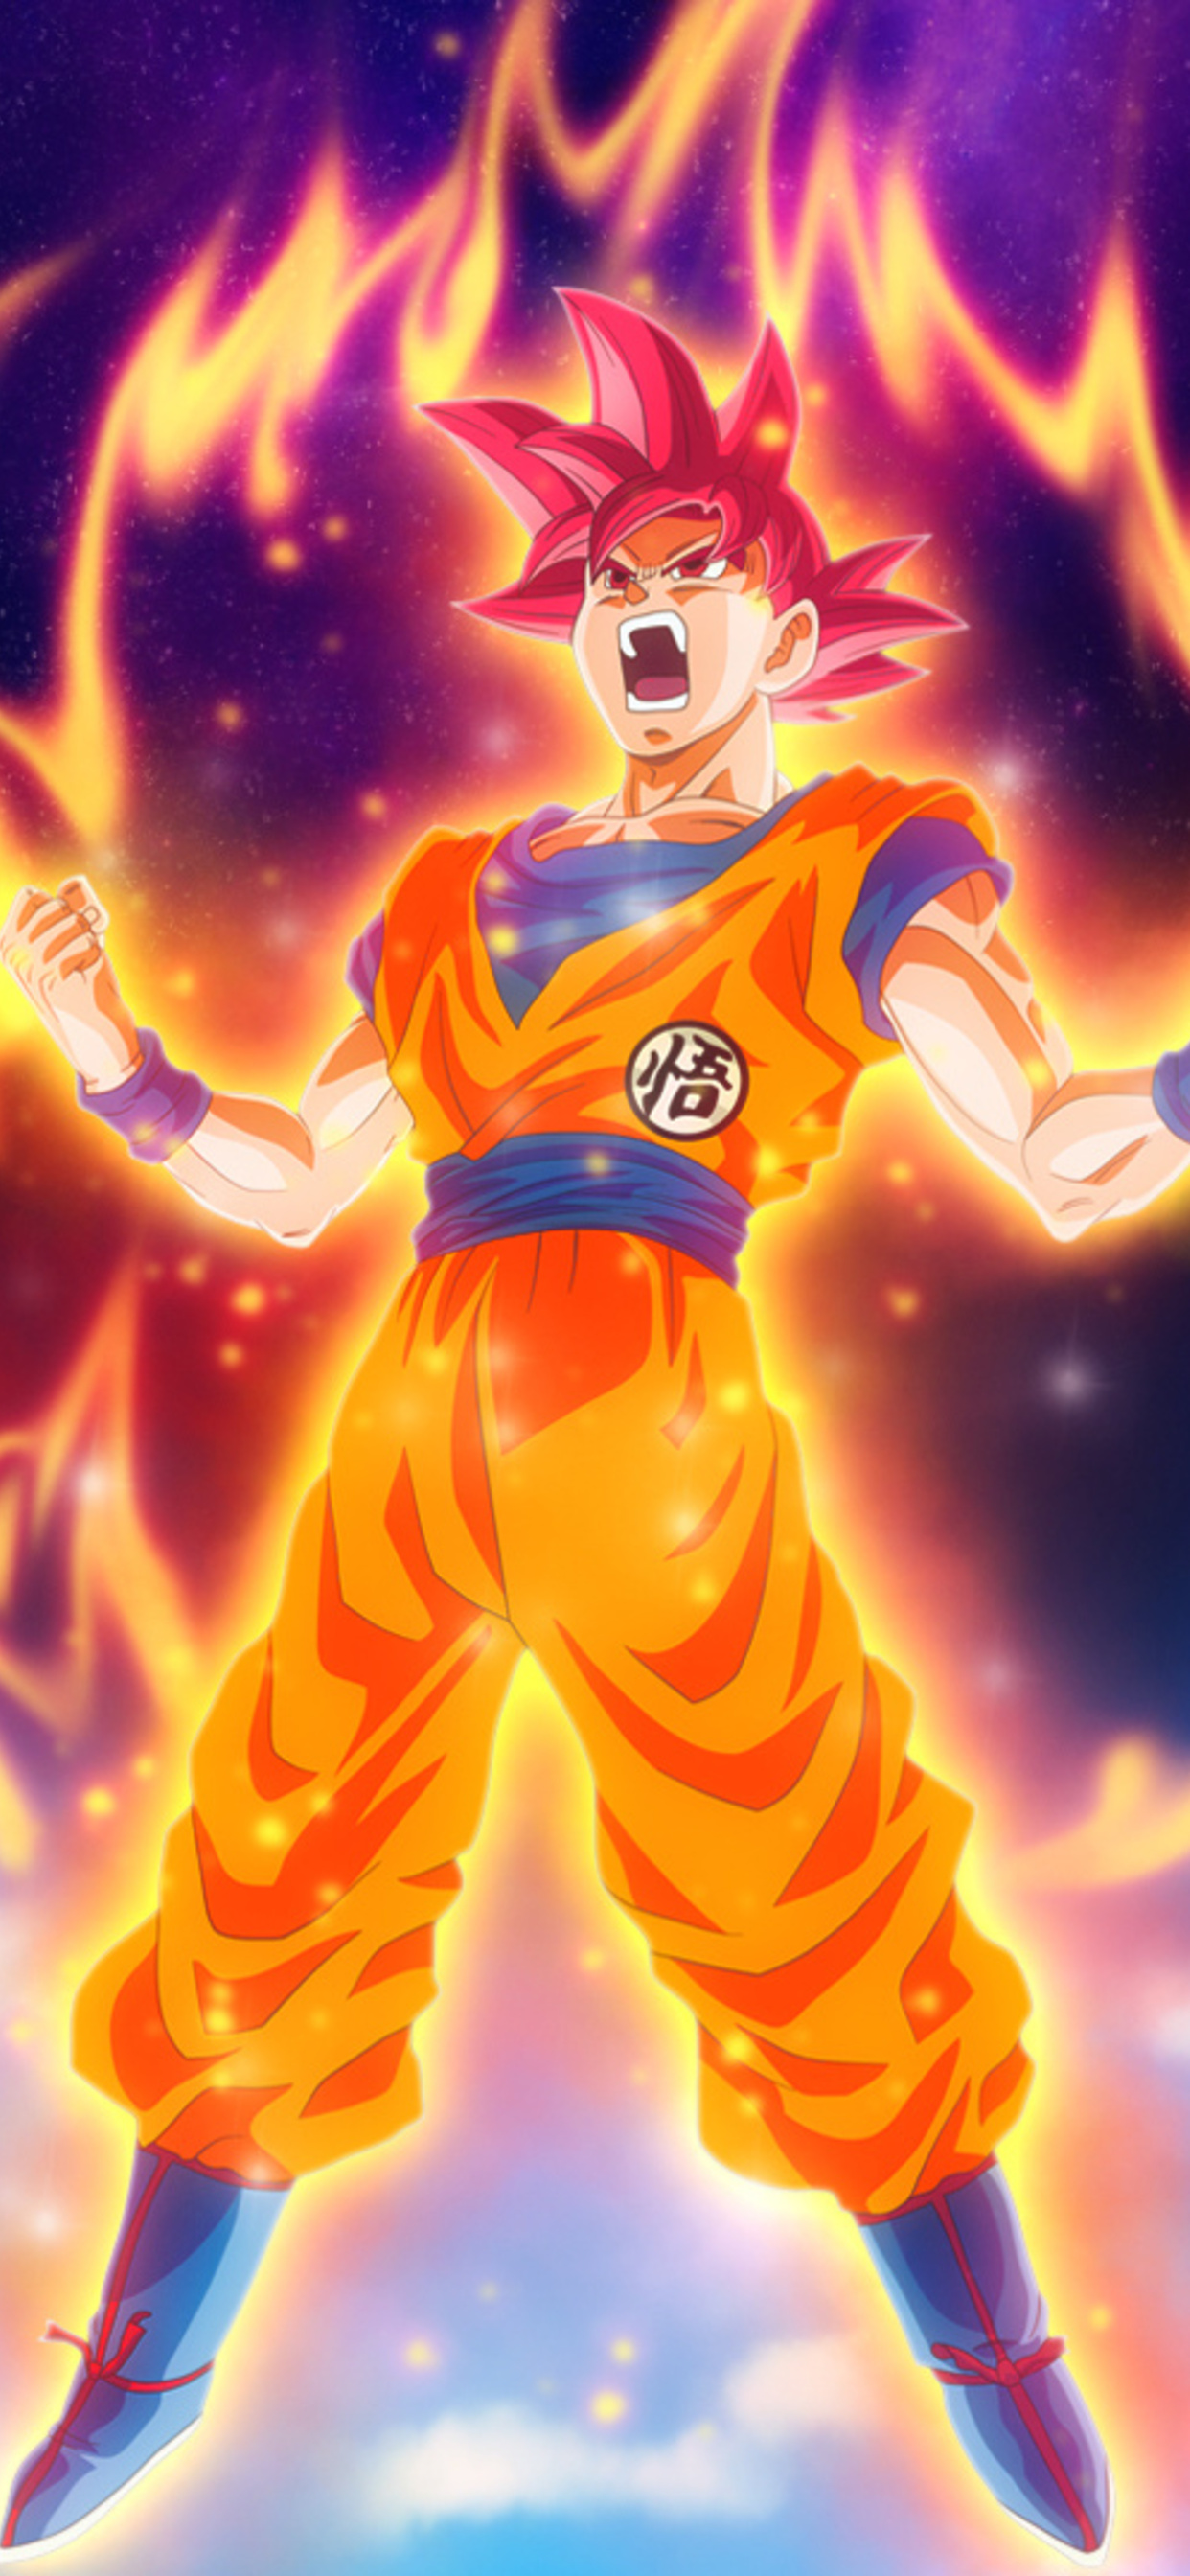 dragon ball z goku 6r